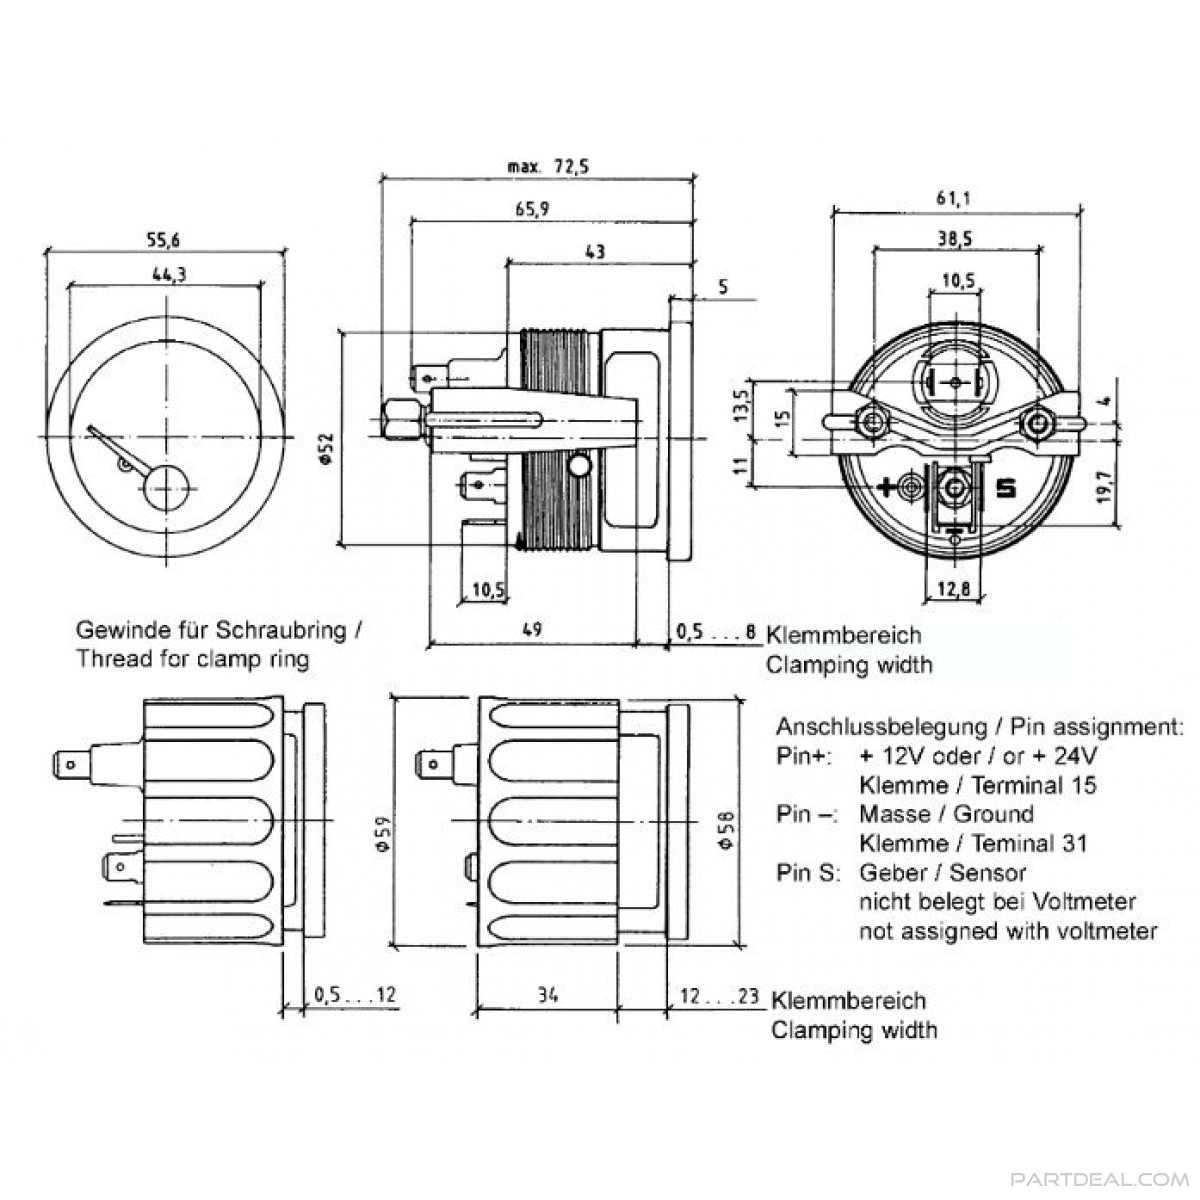 [DIAGRAM_1CA]  CW_6317] Water Temperature Gauge Wiring Diagram On Vdo Wiring Diagrams For  Vw Schematic Wiring | Vdo Temp Gauge Wiring Diagram With Magnet |  | Loida Mentra Heeve Mohammedshrine Librar Wiring 101